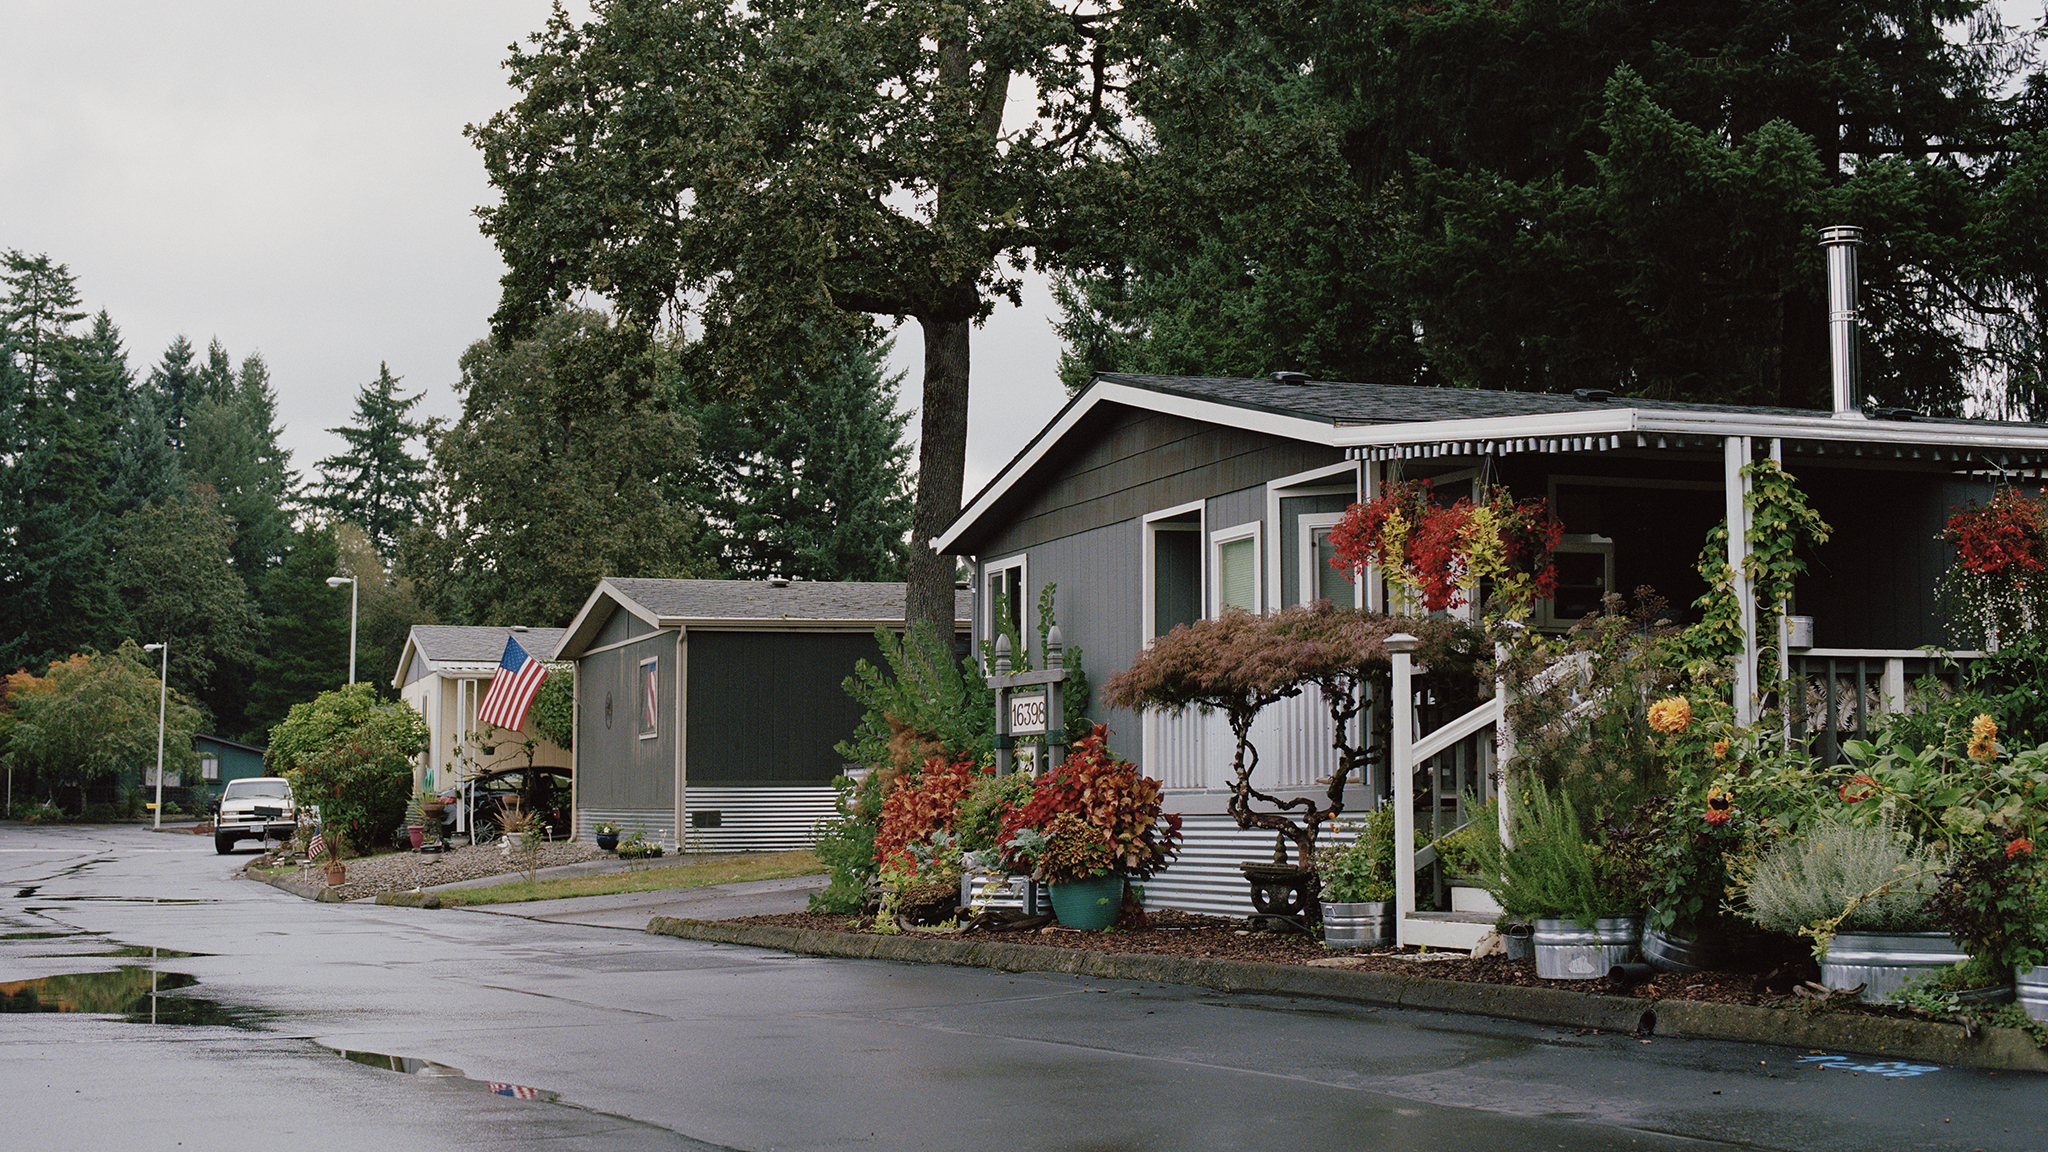 Why big investors are buying up American trailer parks | Financial Times